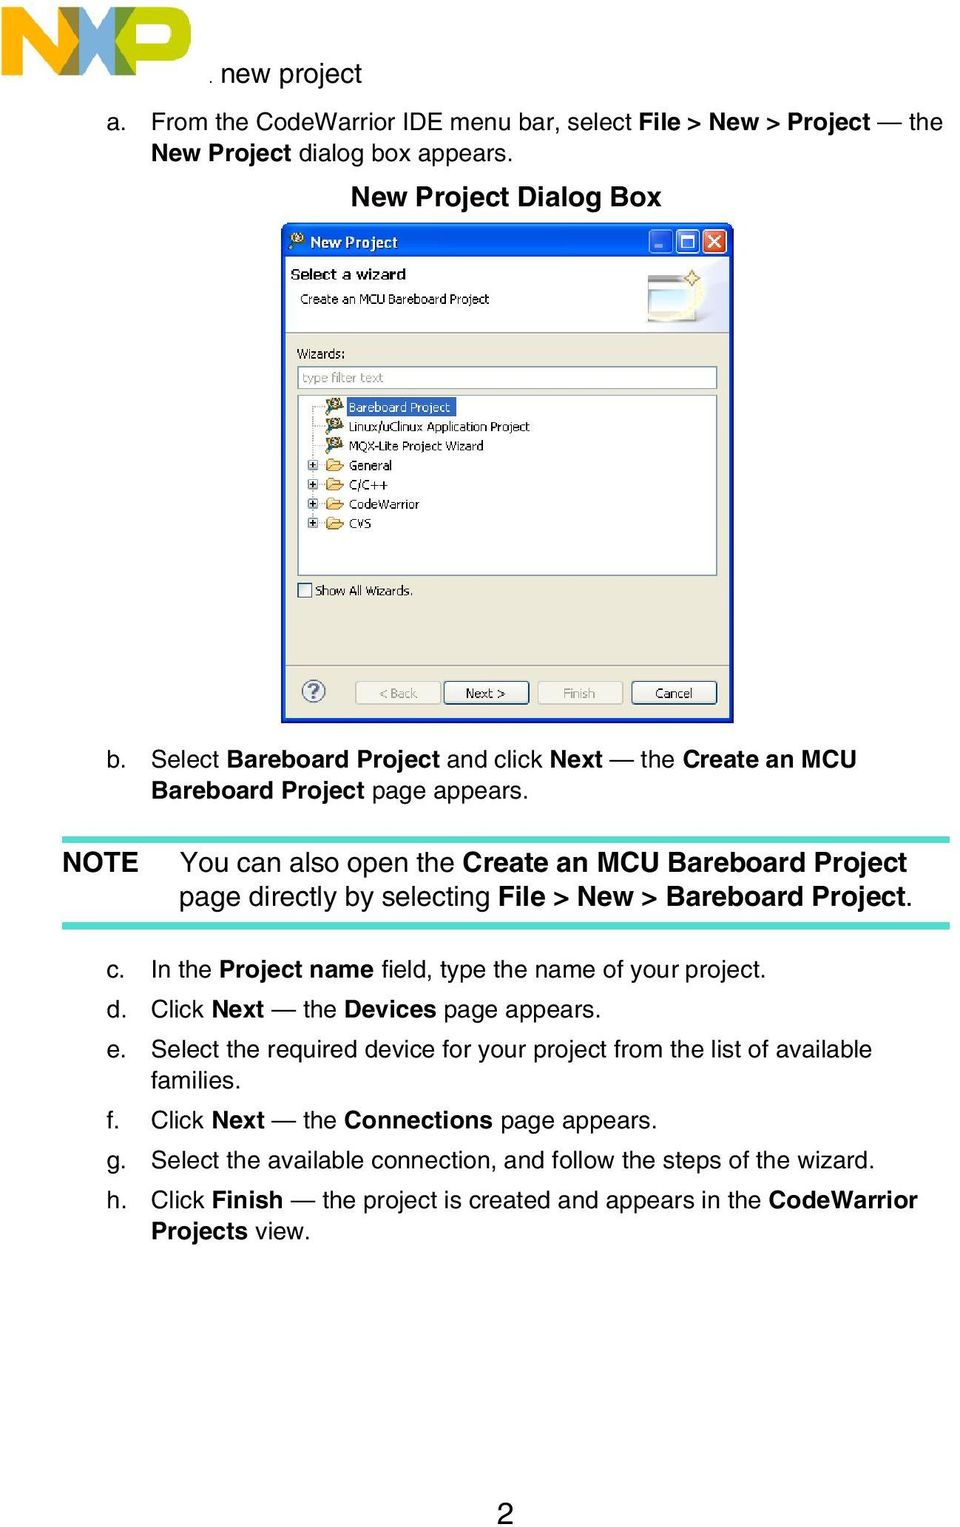 You can also open the Create an MCU Bareboard Project page directly by selecting File > New > Bareboard Project. c. In the Project name field, type the name of your project. d. Click Next the Devices page appears.